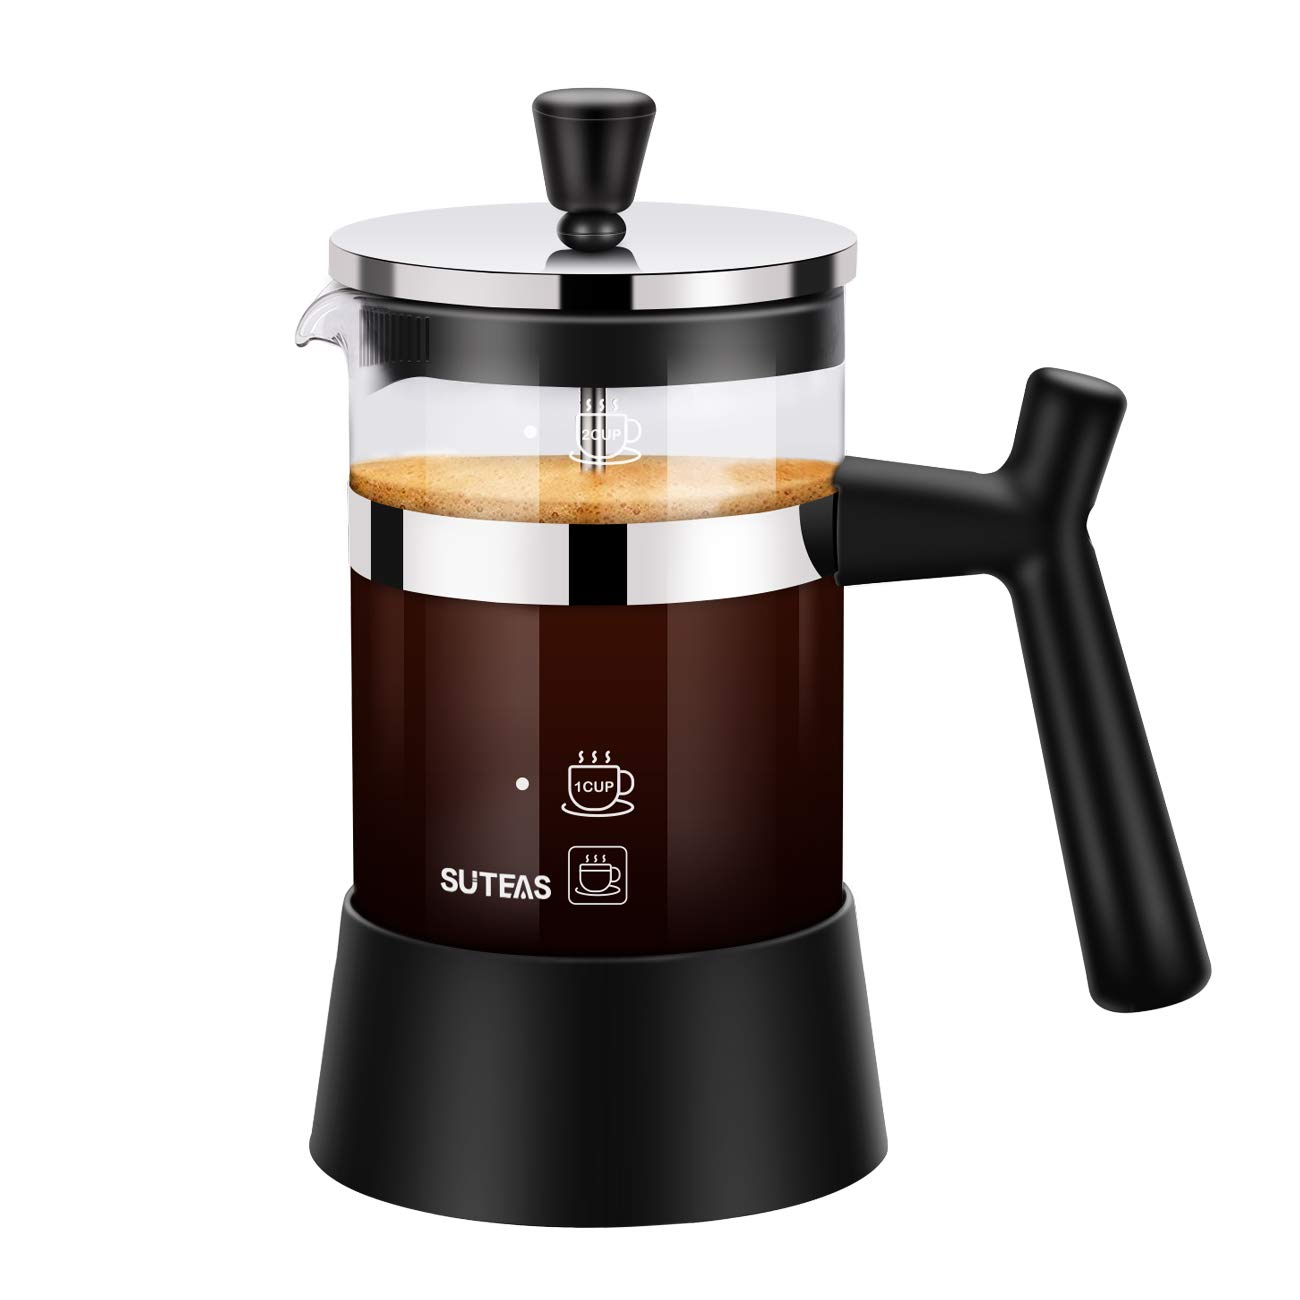 French Press Small Coffee Press 20oz 600ml, Coffee Press Glass Single Serve with Bobus Stainless Steel Filter Screen